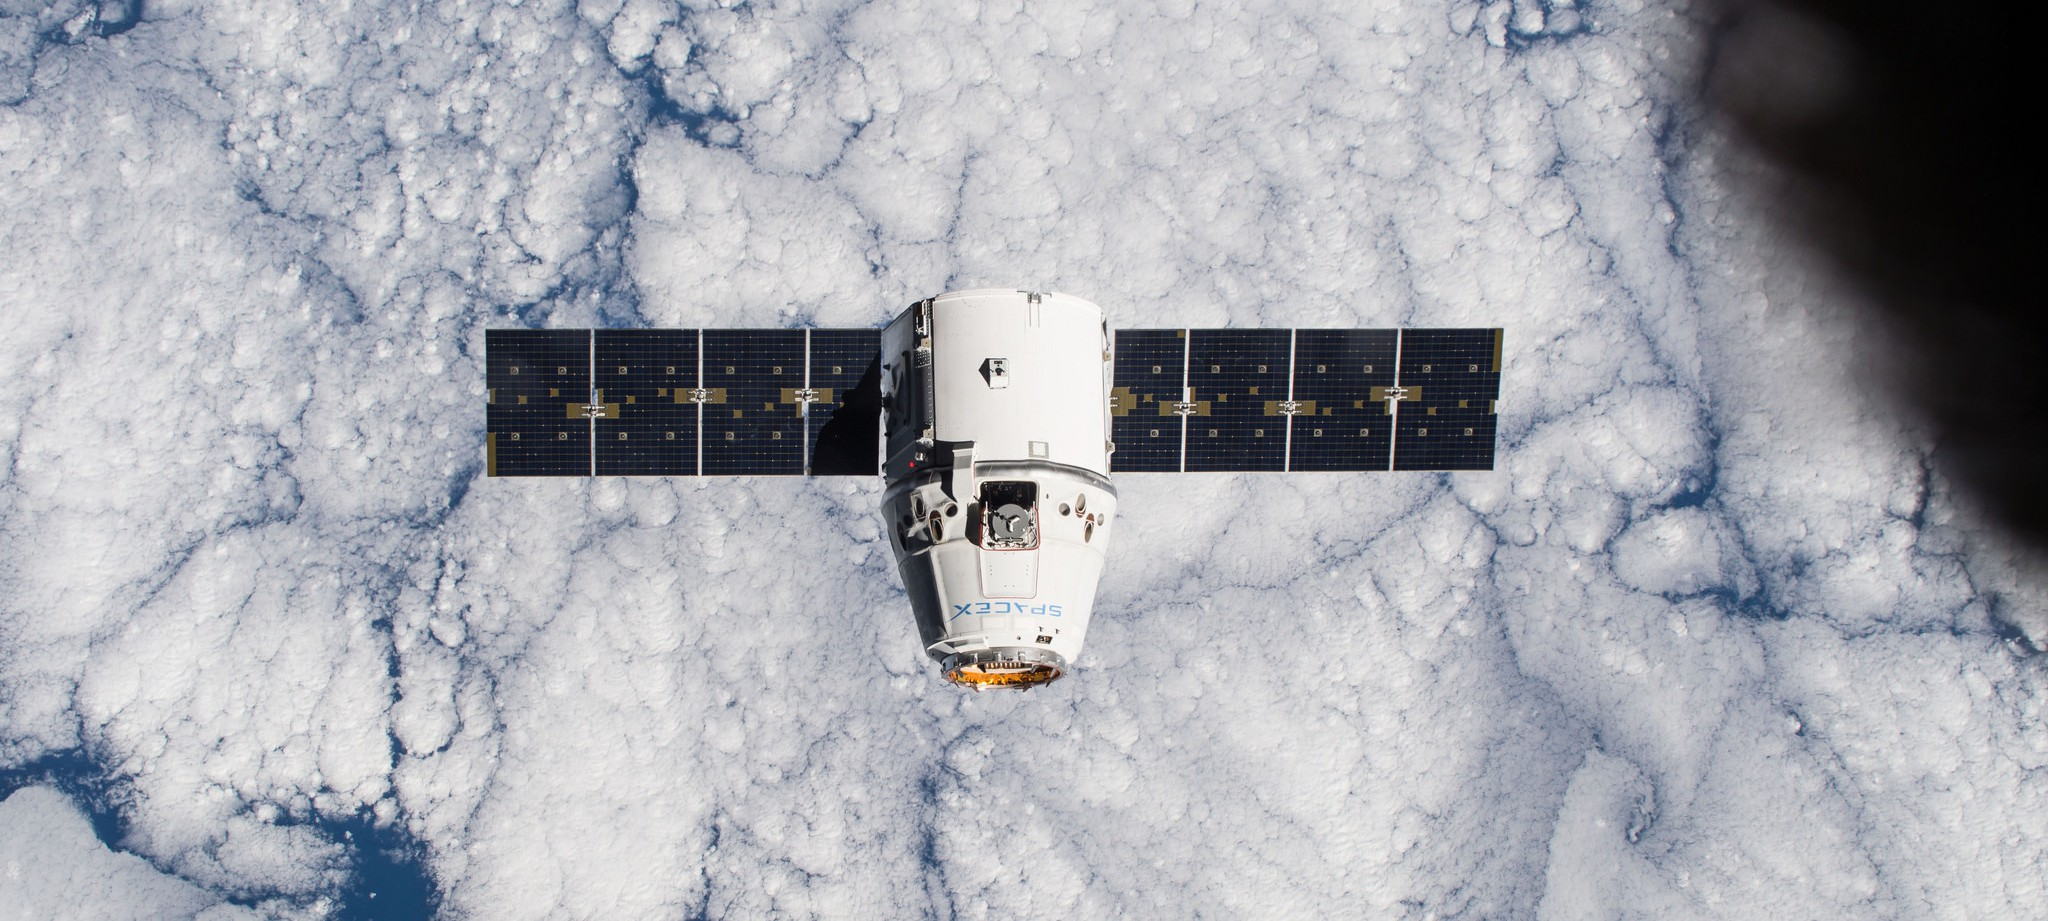 by one of the Expedition 42 crew members aboard the International Space Station, shows the SpaceX Dragon cargo craft approaching on Jan. 12 2015 - NASA Johnson